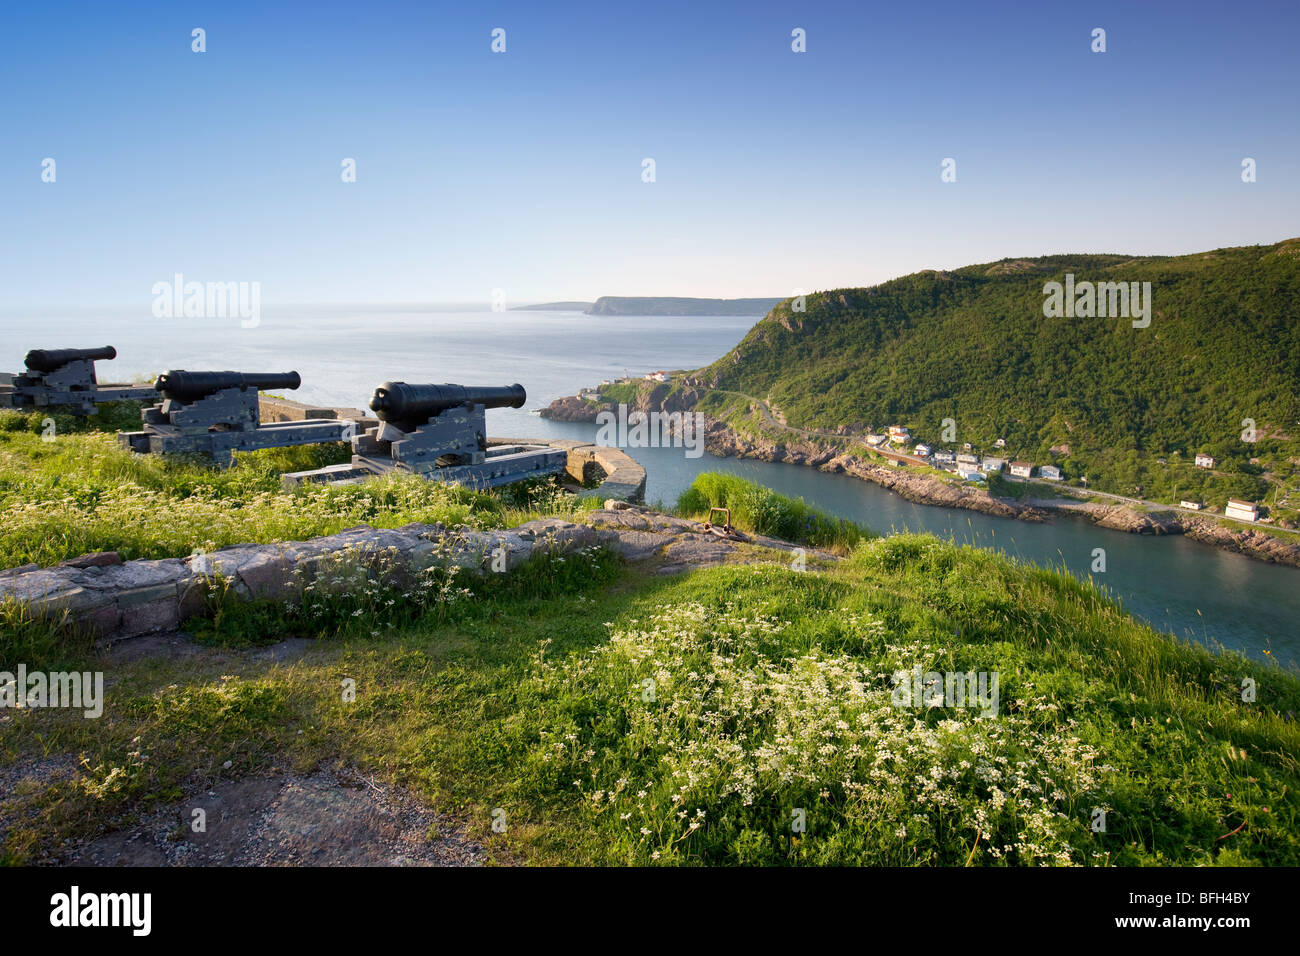 View from Signal Hill, National Historic Site. St. John's, Newfoundland, Canada - Stock Image